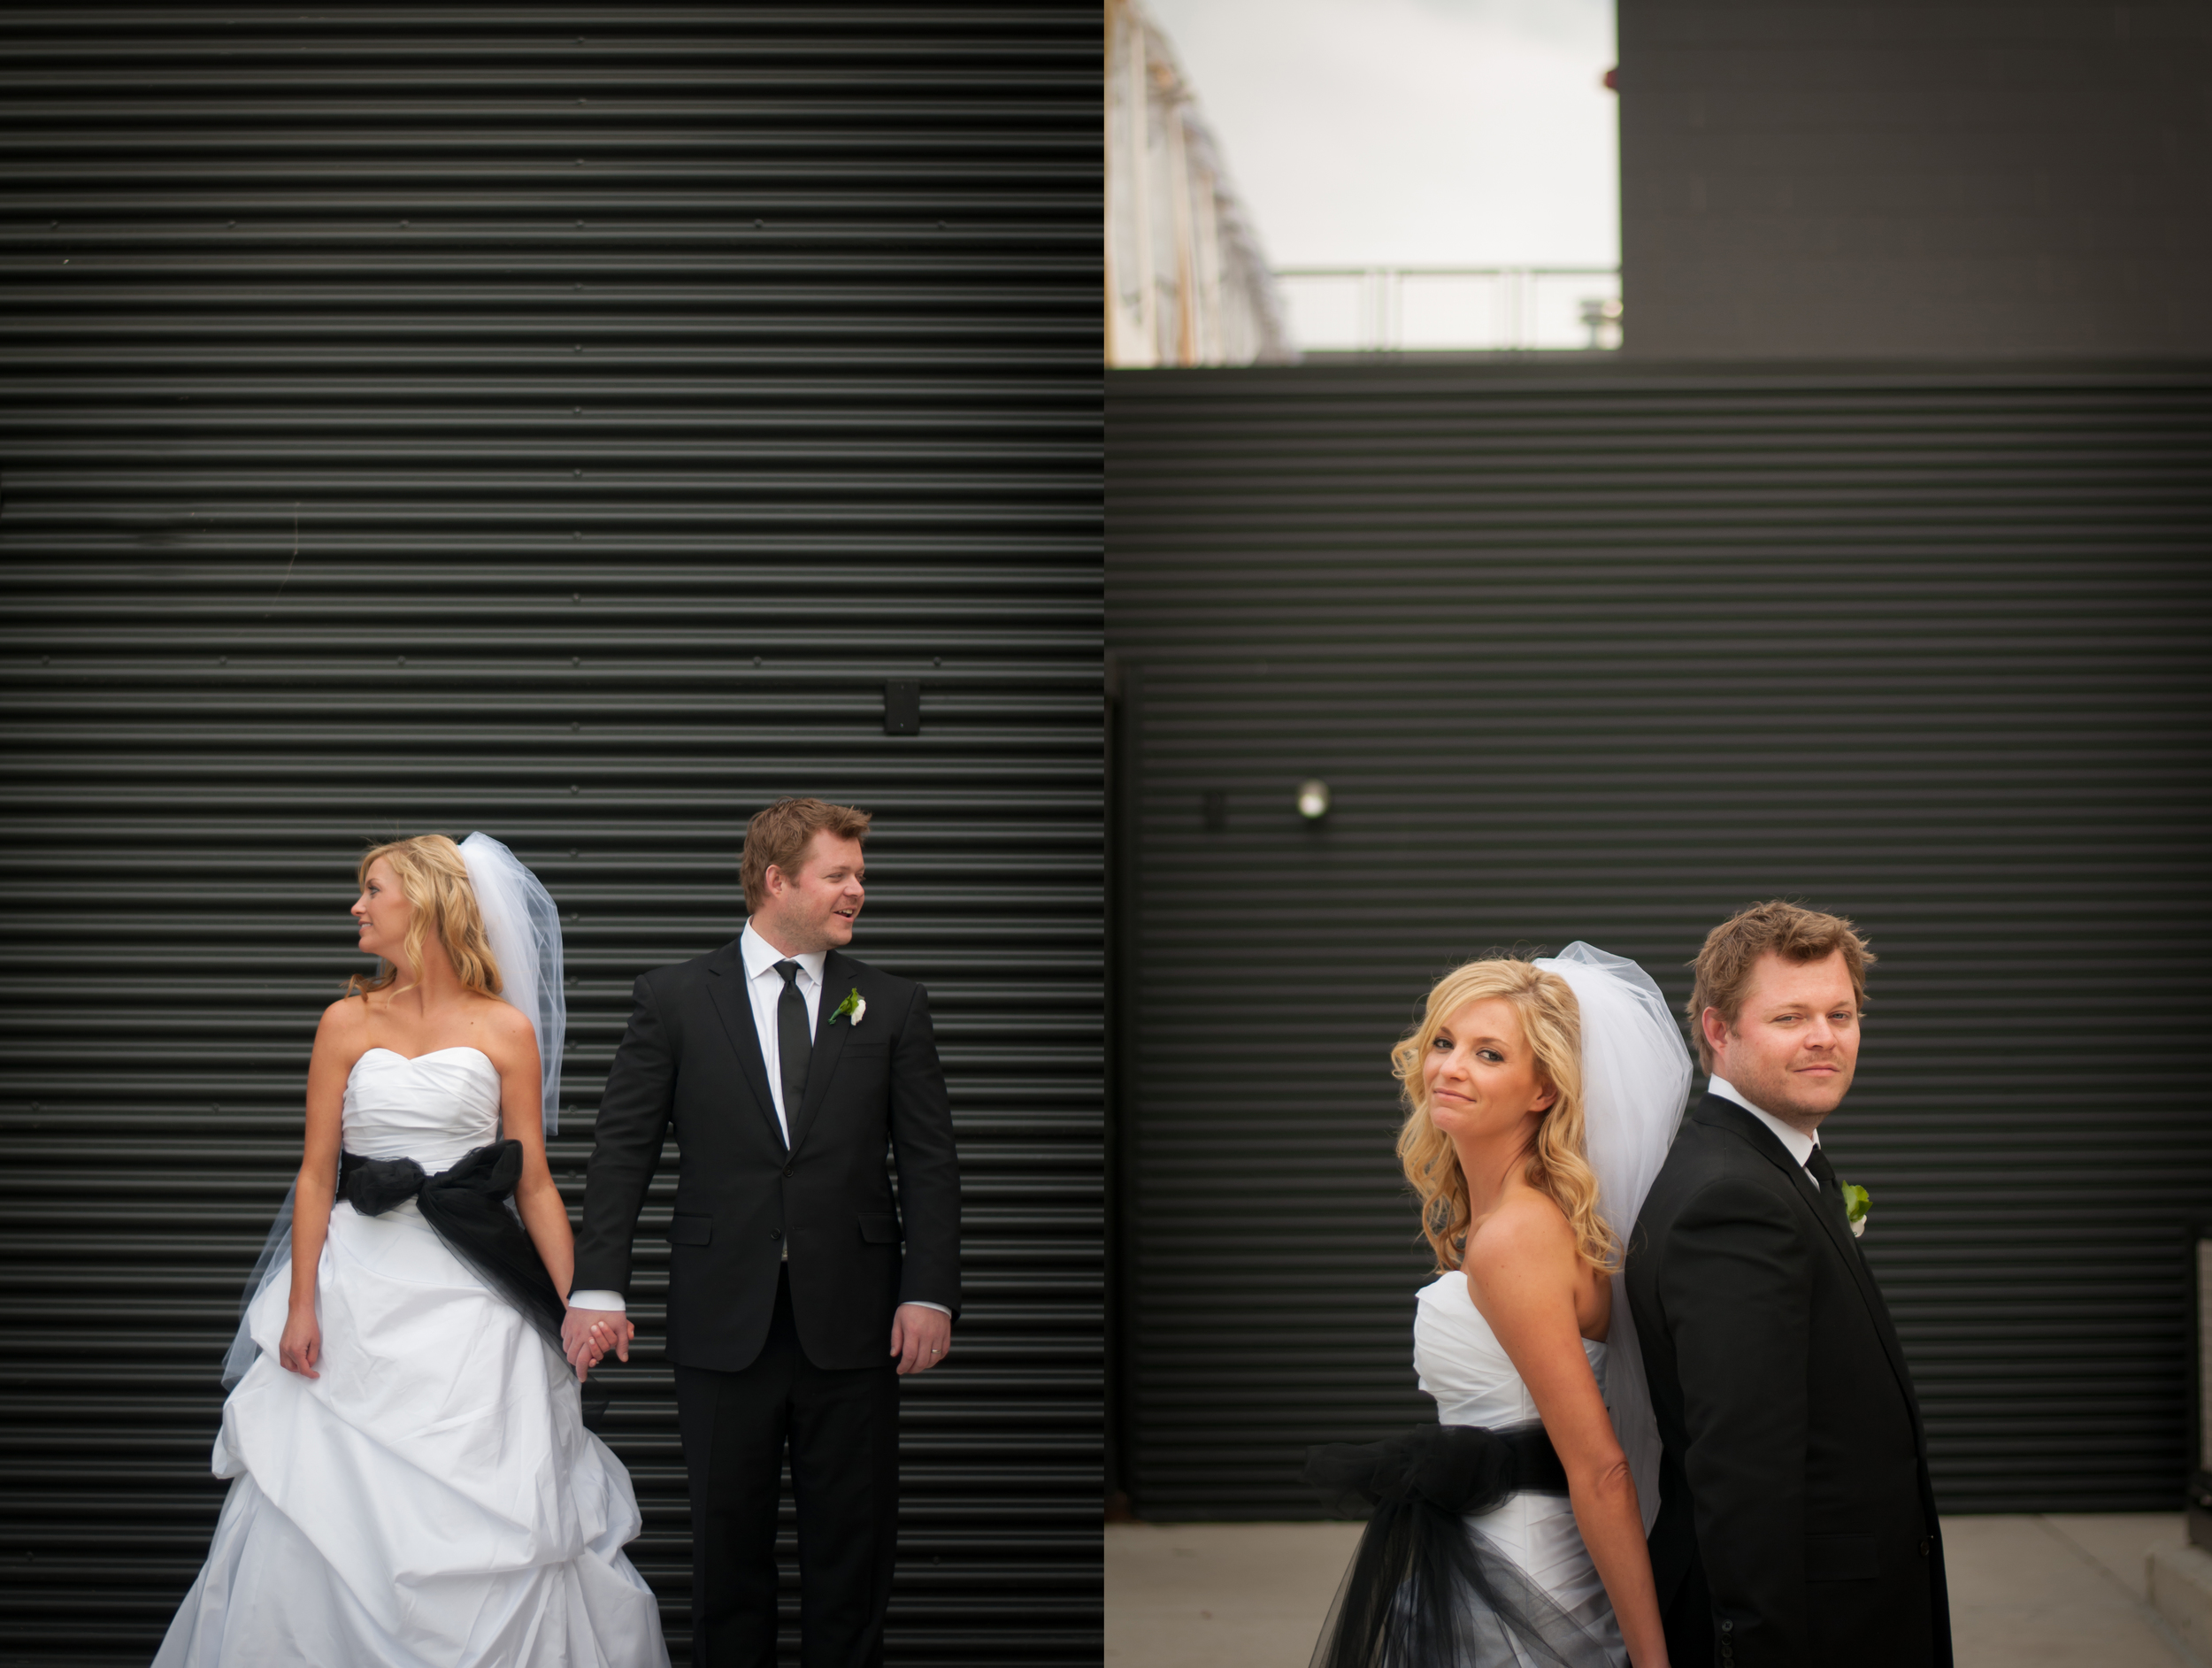 meredith donnelly photography-70.jpg